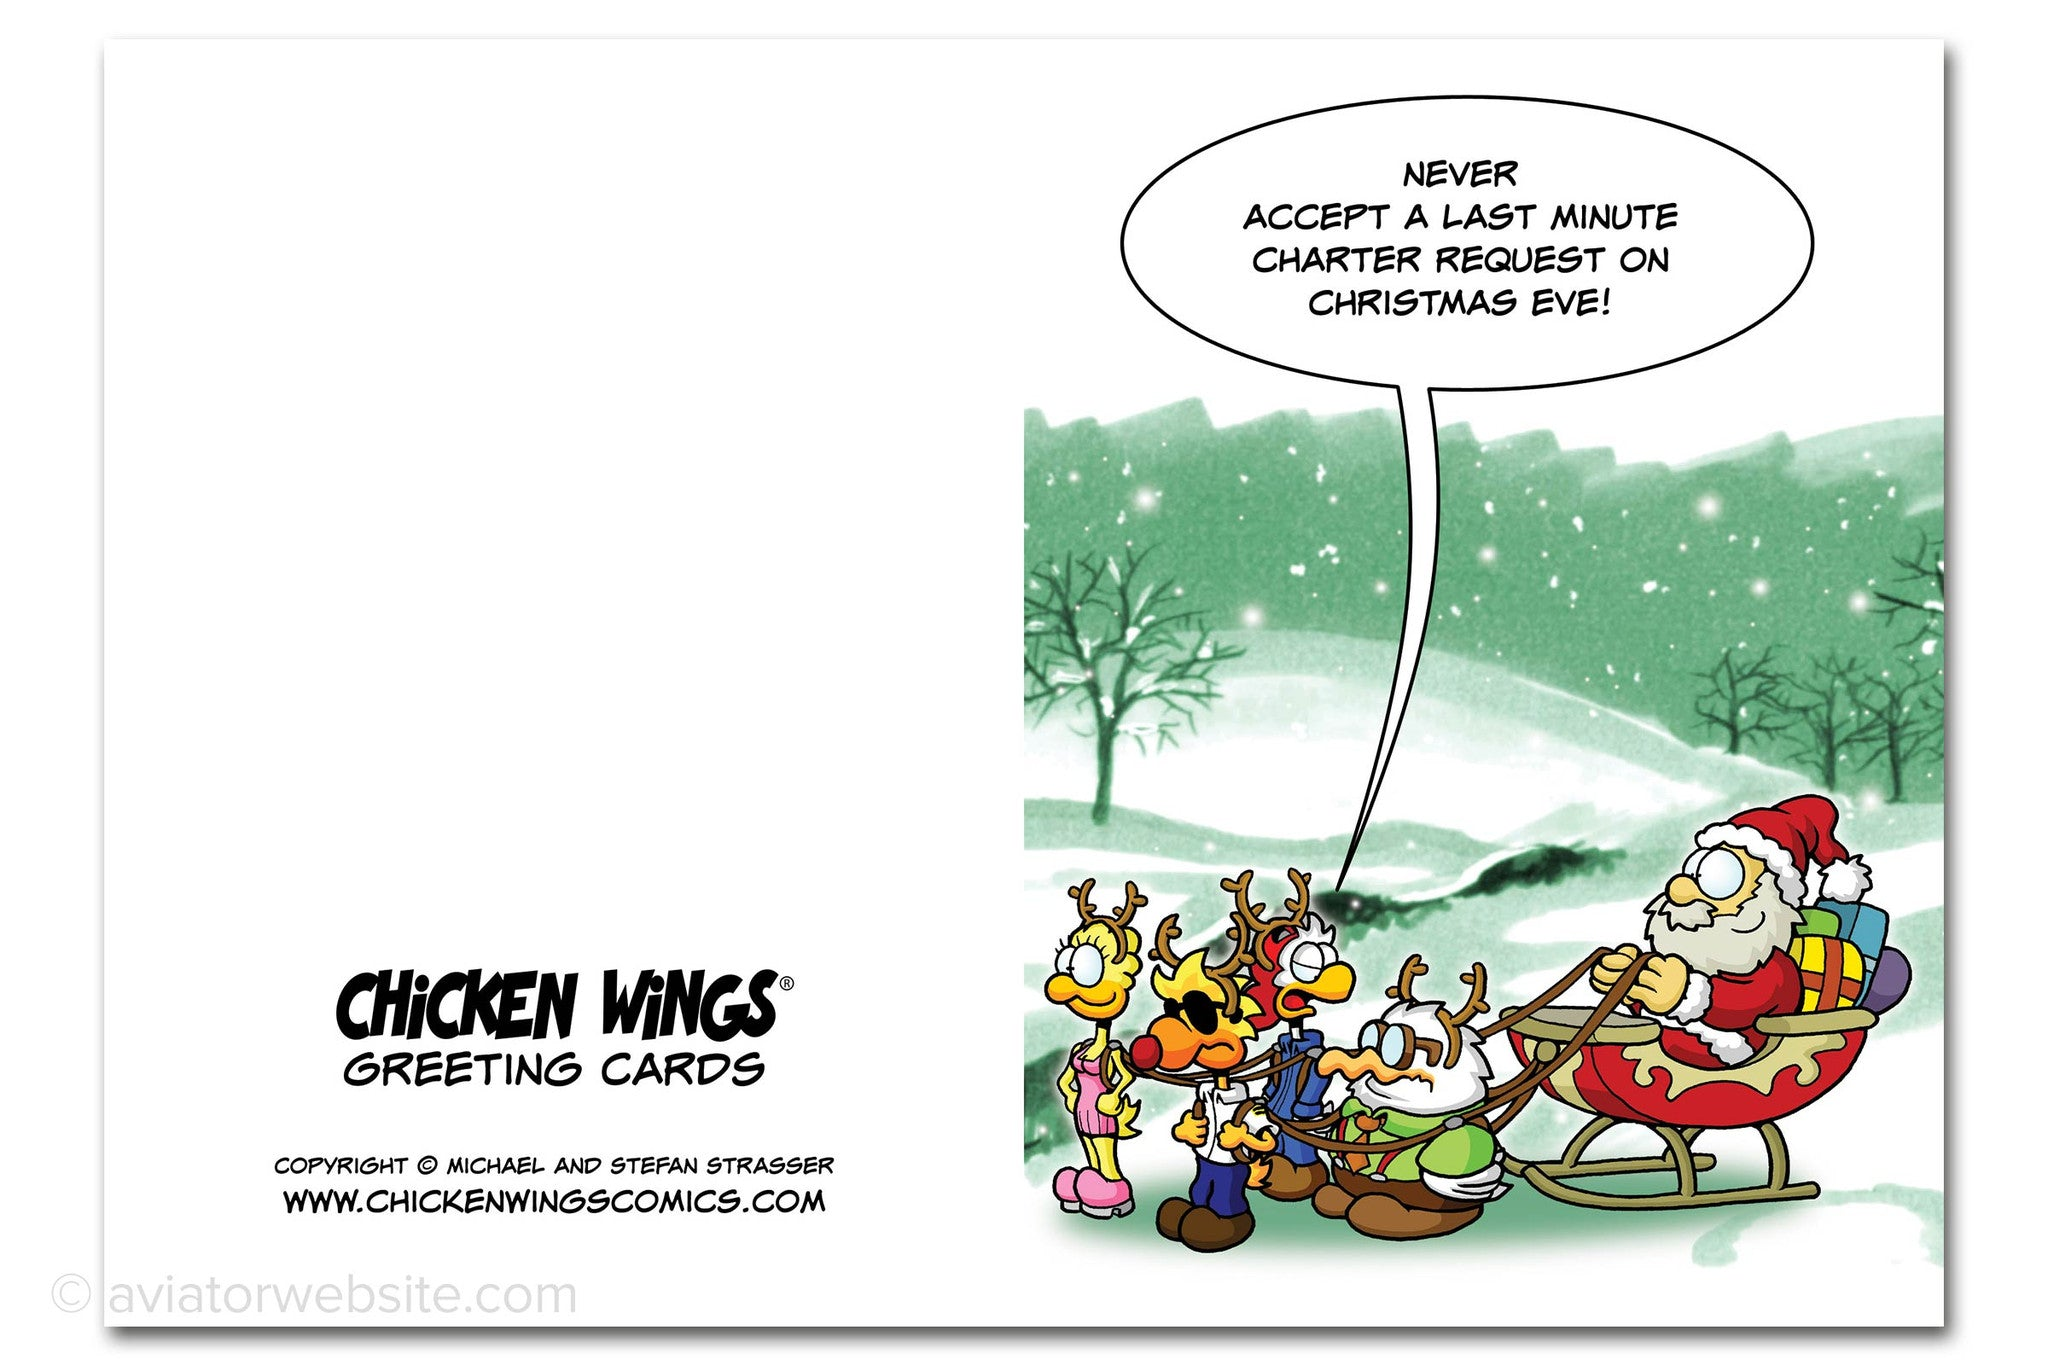 Christmas card last minute charter chicken wings 10 cards chicken wings christmas card kristyandbryce Gallery